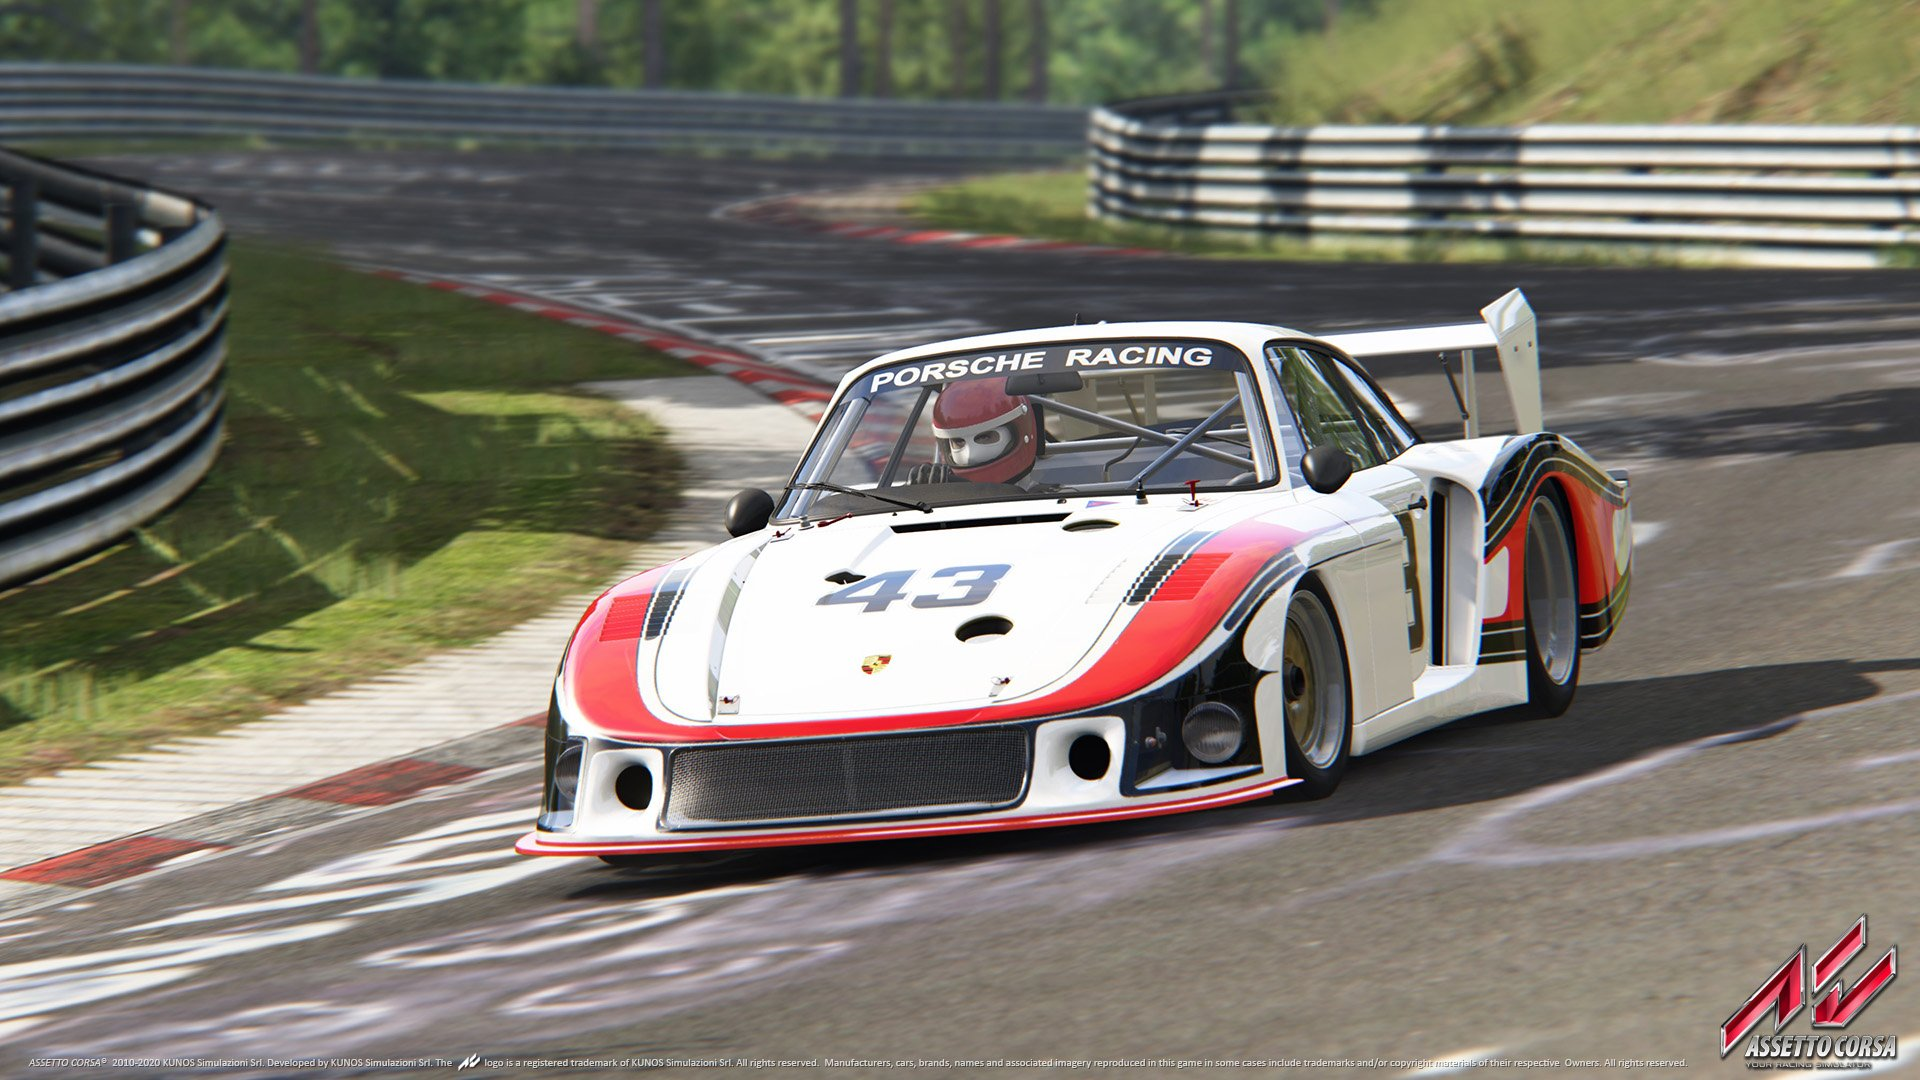 assetto corsa ultimate edition launches for consoles inside sim racing. Black Bedroom Furniture Sets. Home Design Ideas